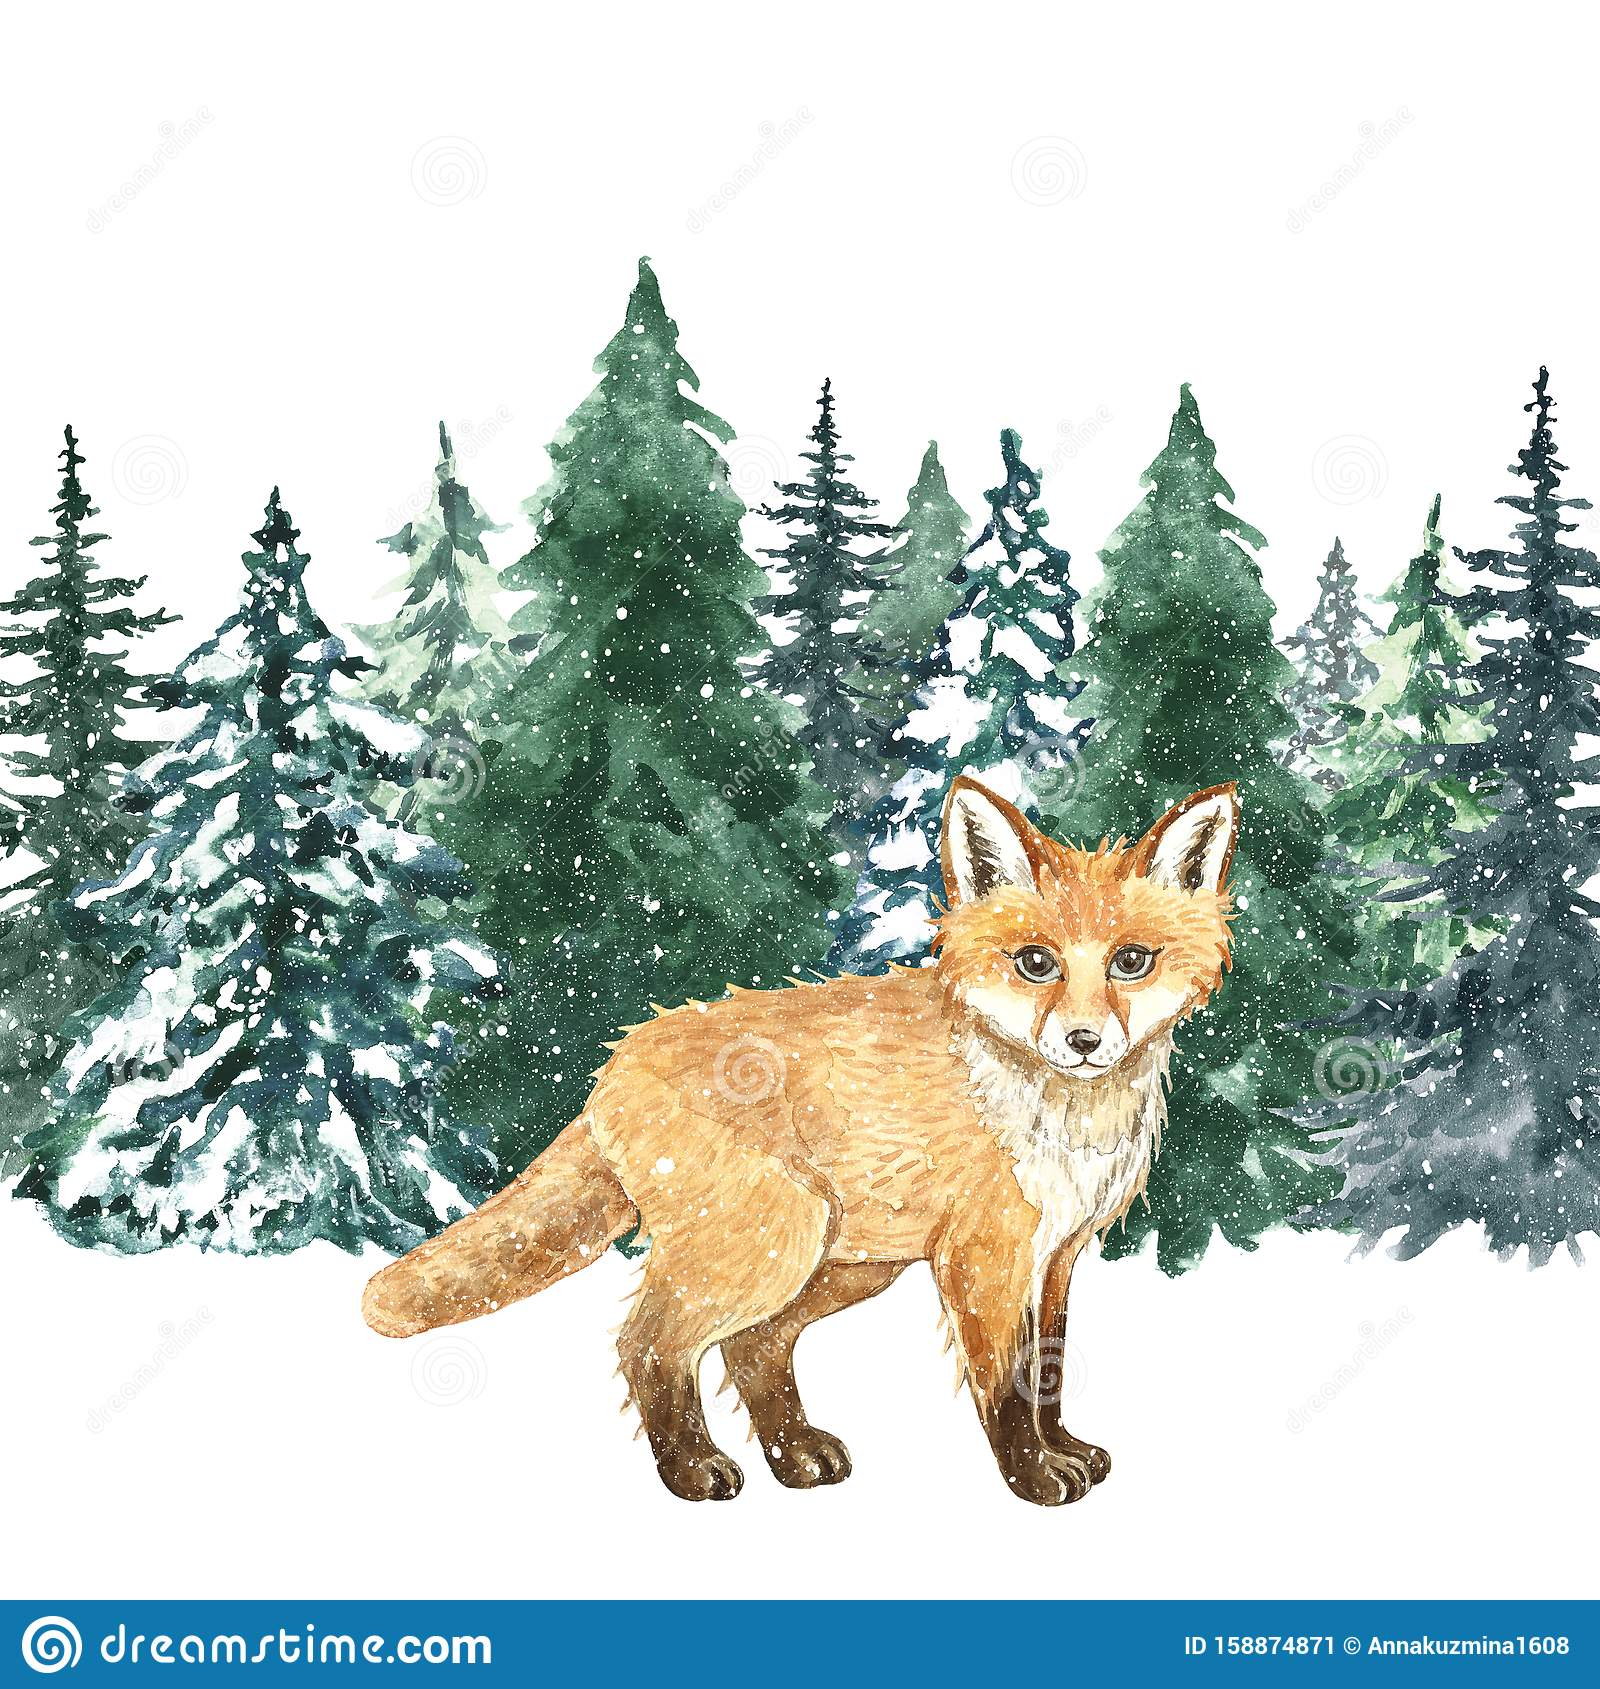 watercolor hand painted fox winter forest christmas background little cute wild animal watercolor winter pine forest 158874871